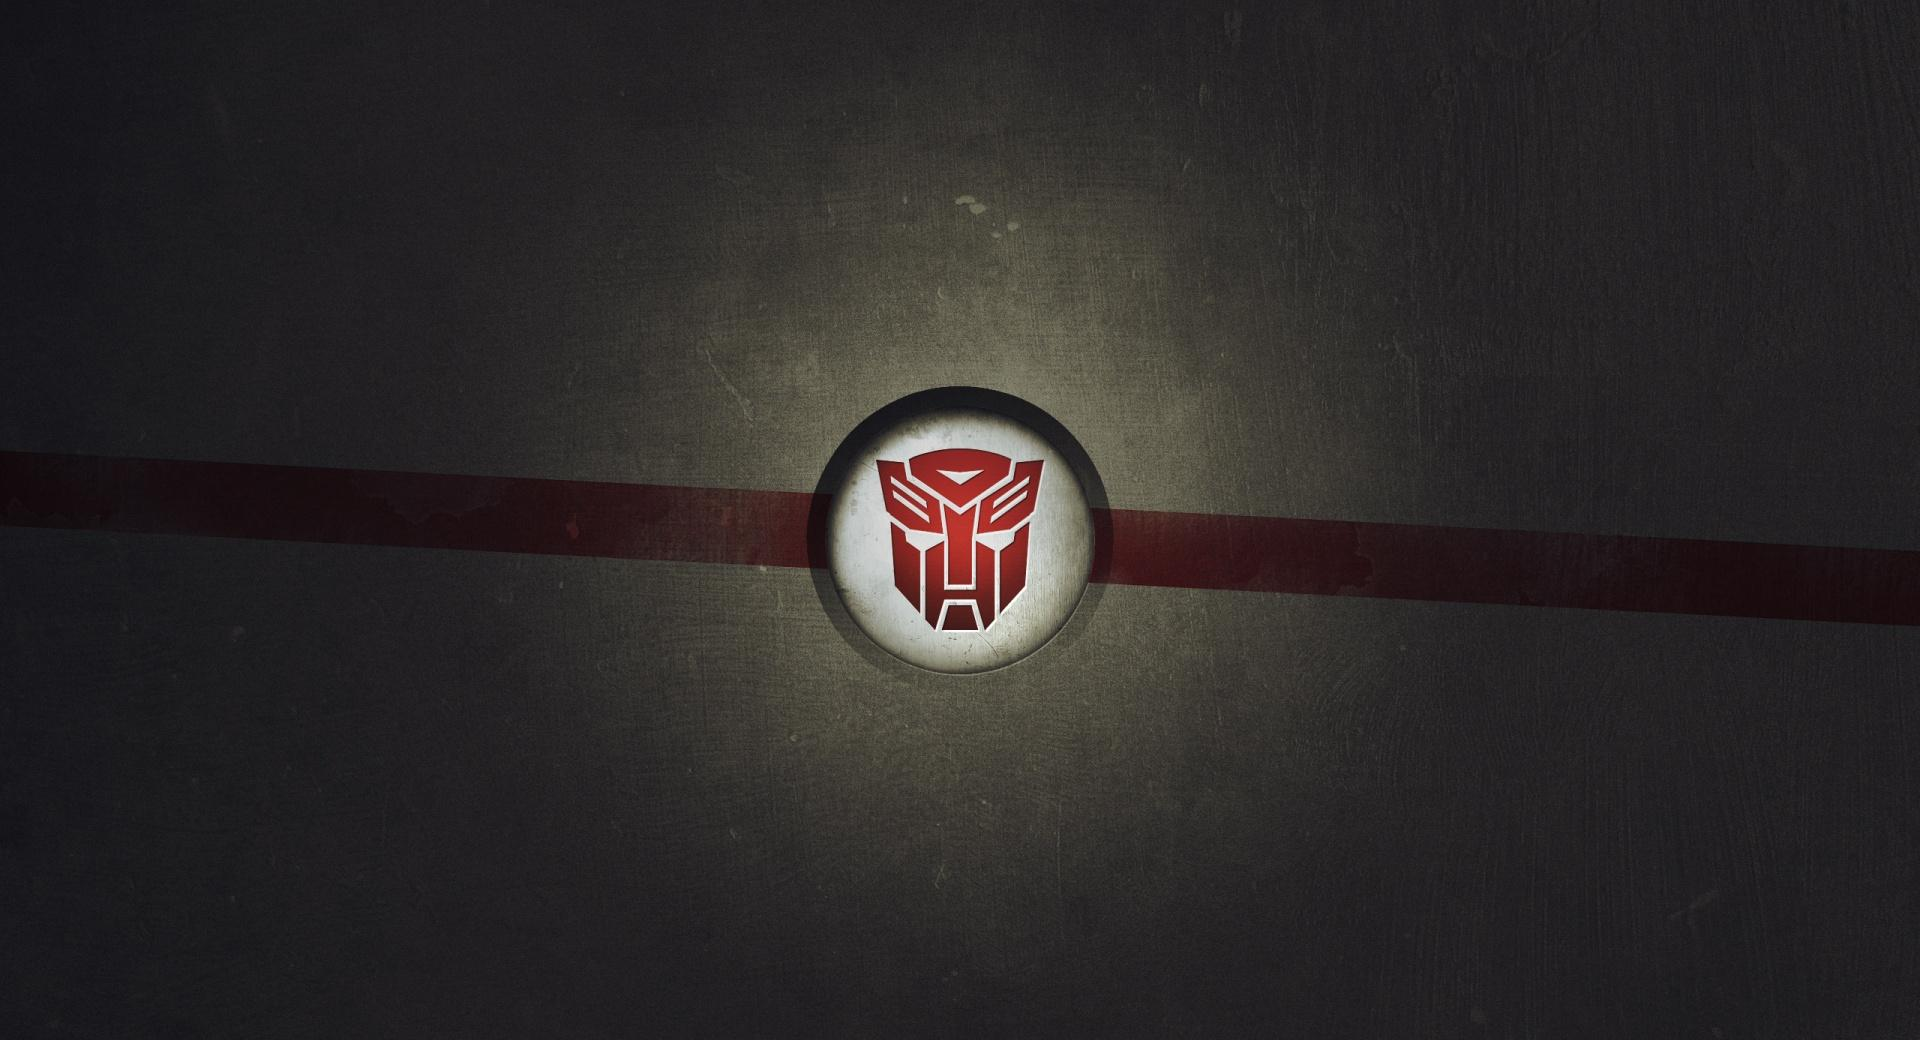 Autobots Logo Transformers wallpapers HD quality